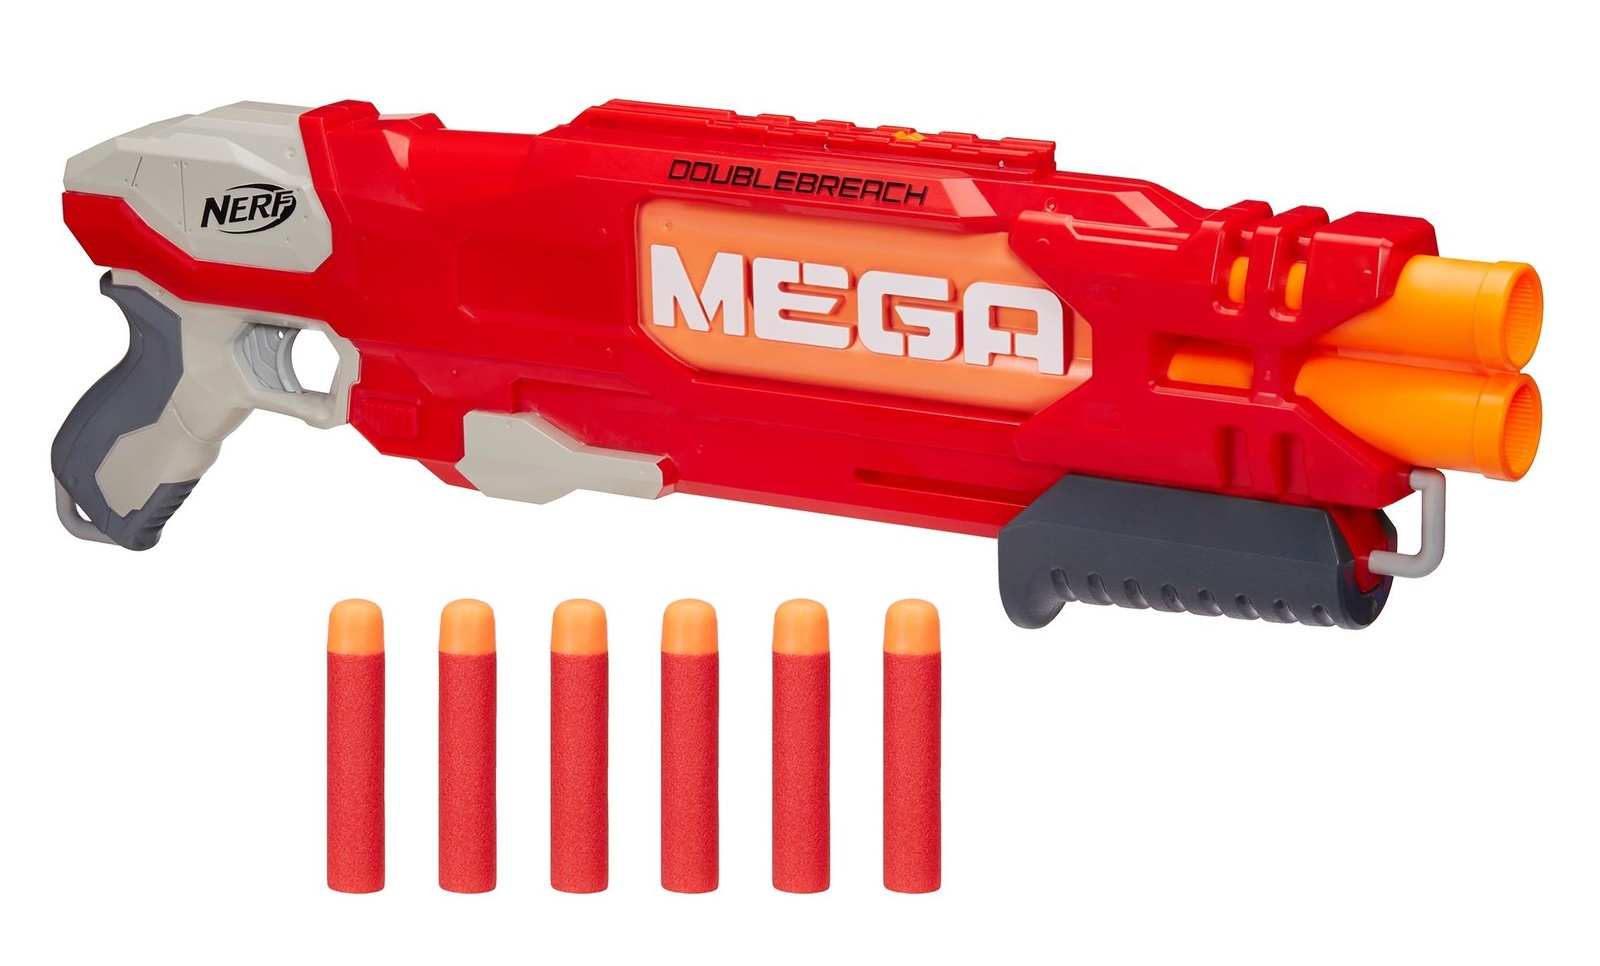 nerf n strike elite mega double breach blaster toy at mighty ape nz. Black Bedroom Furniture Sets. Home Design Ideas